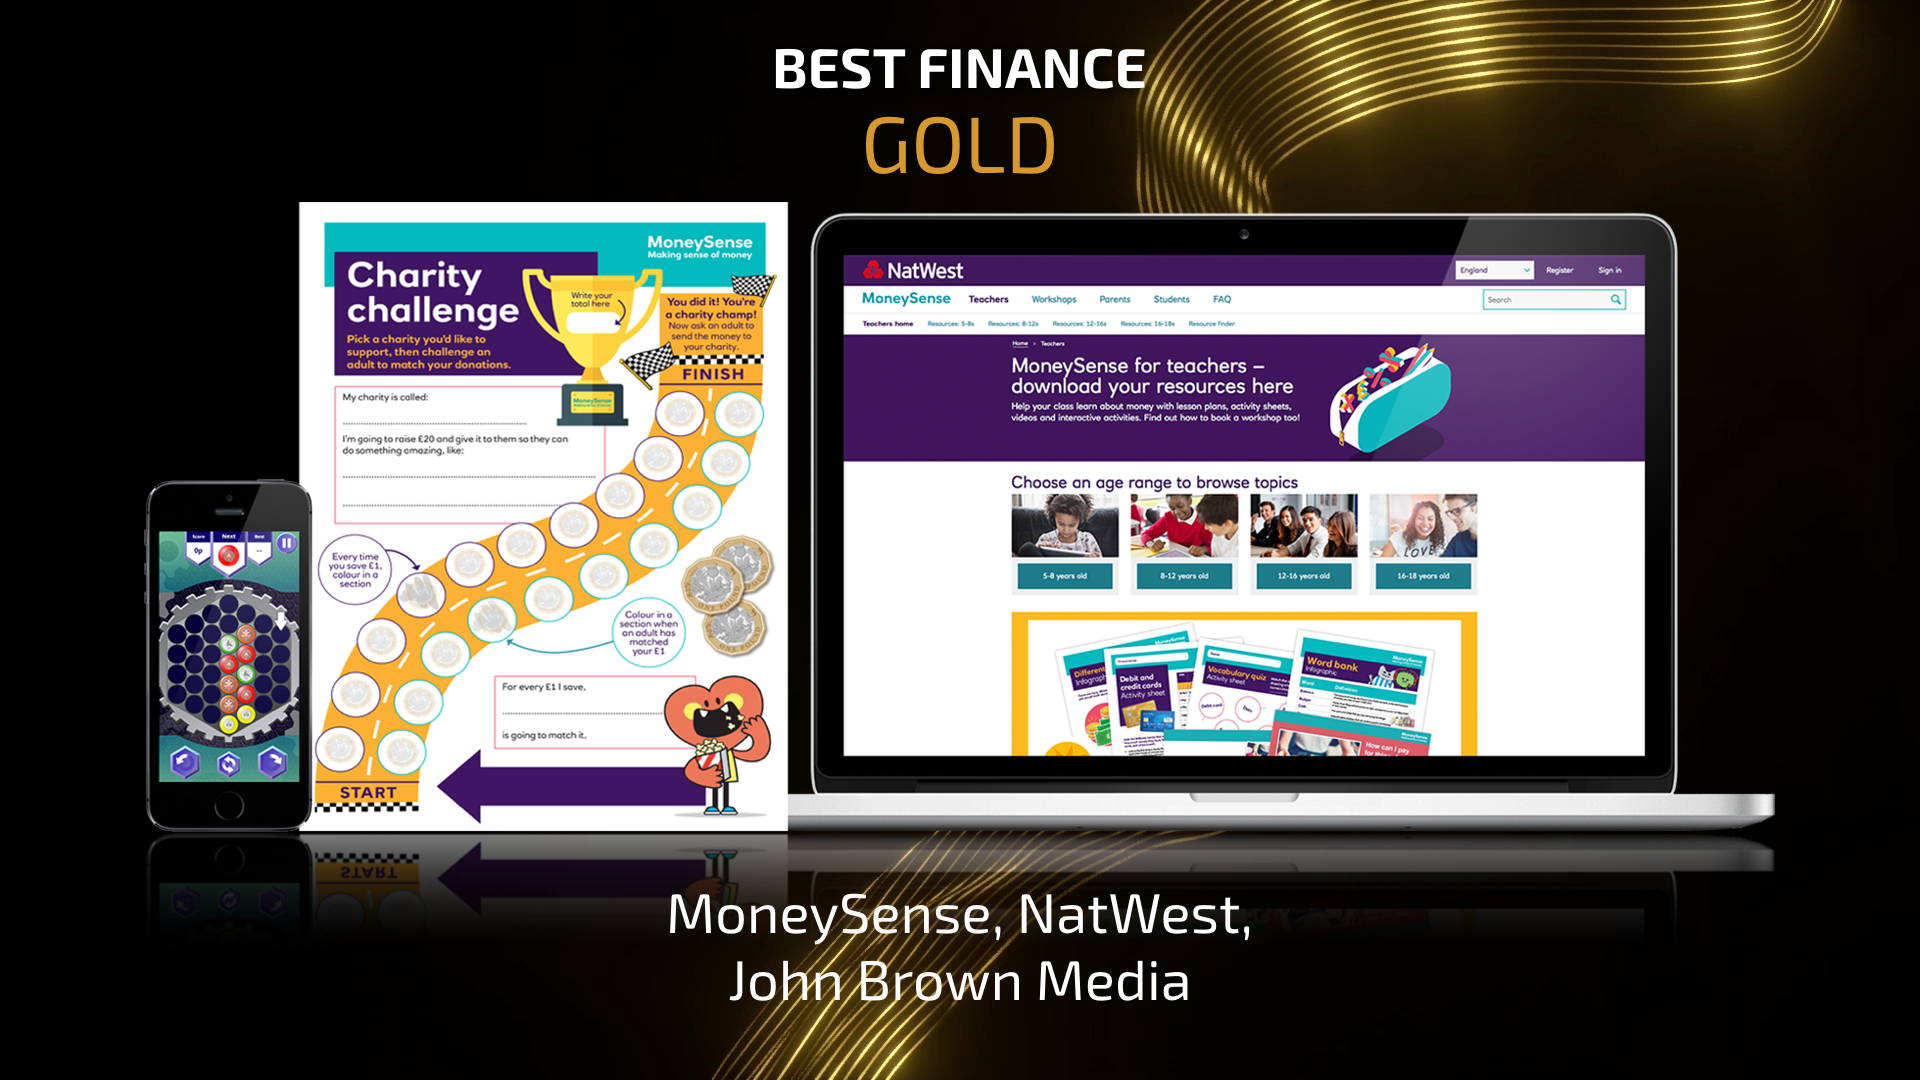 Best Finance - Gold